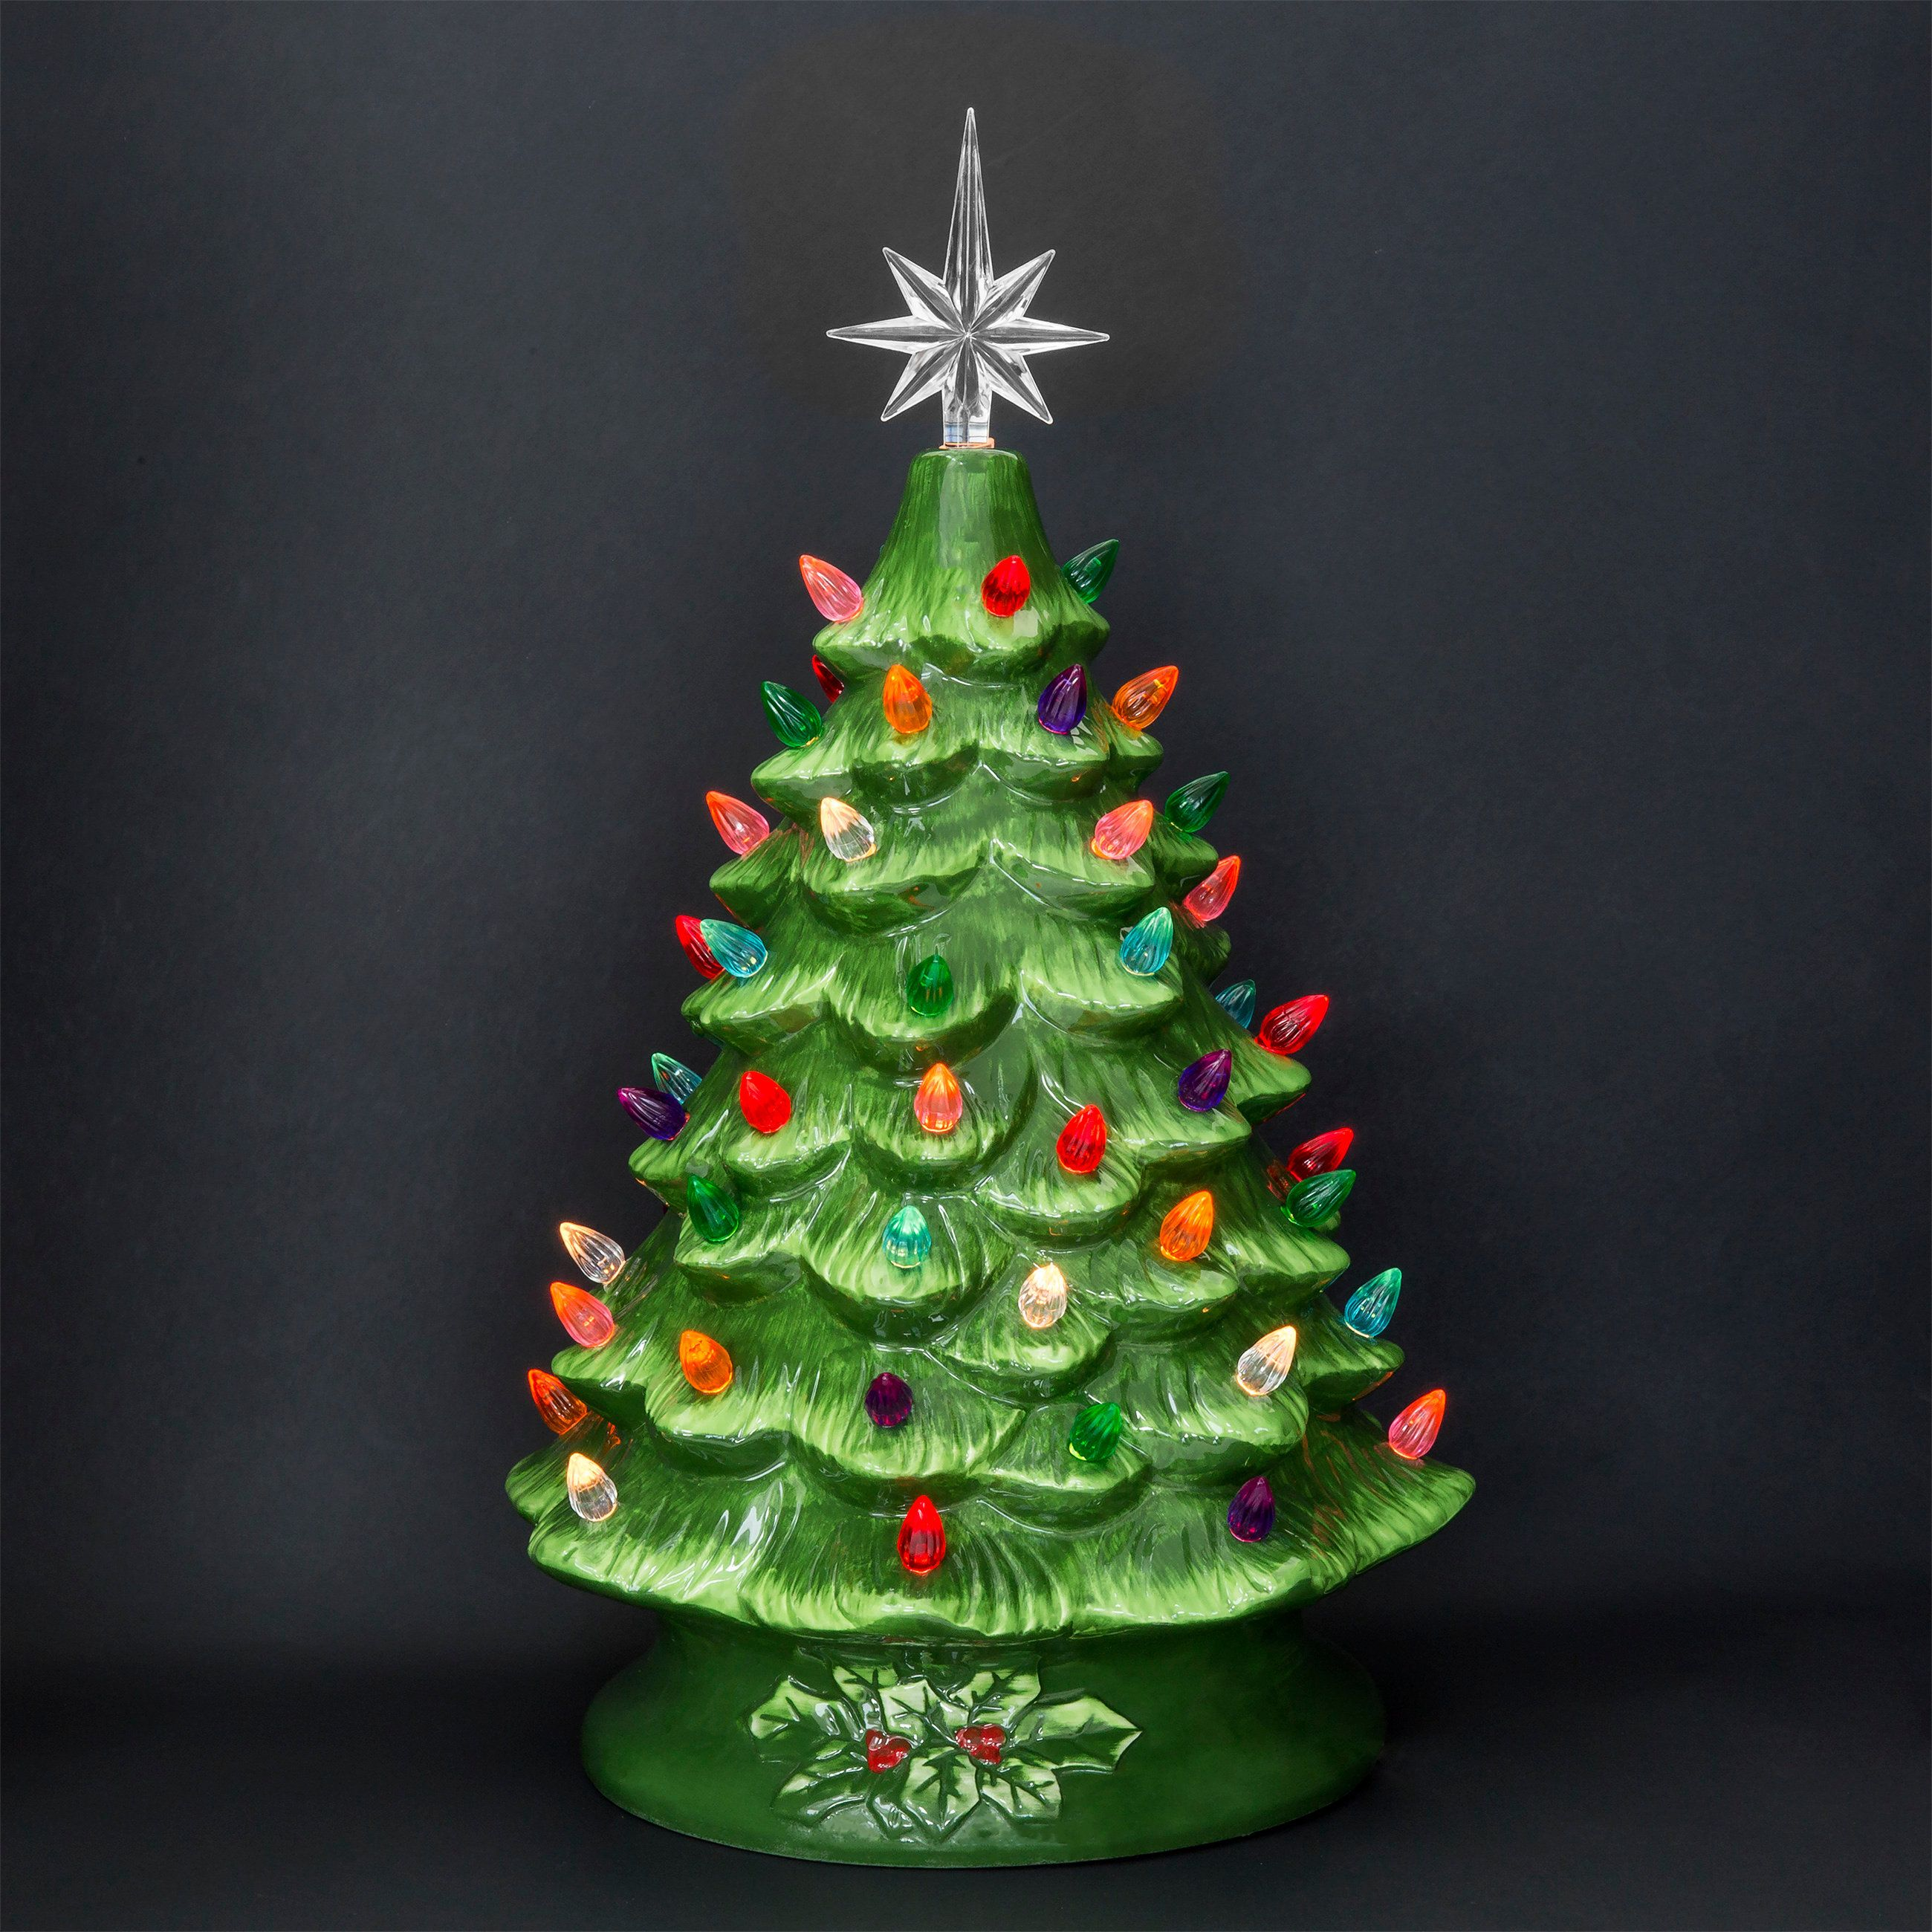 "Ceramic Tabletop Christmas Tree With Lights Captivating Best Choice Products 15"" Prelit Ceramic Tabletop Christmas Tree W Inspiration Design"